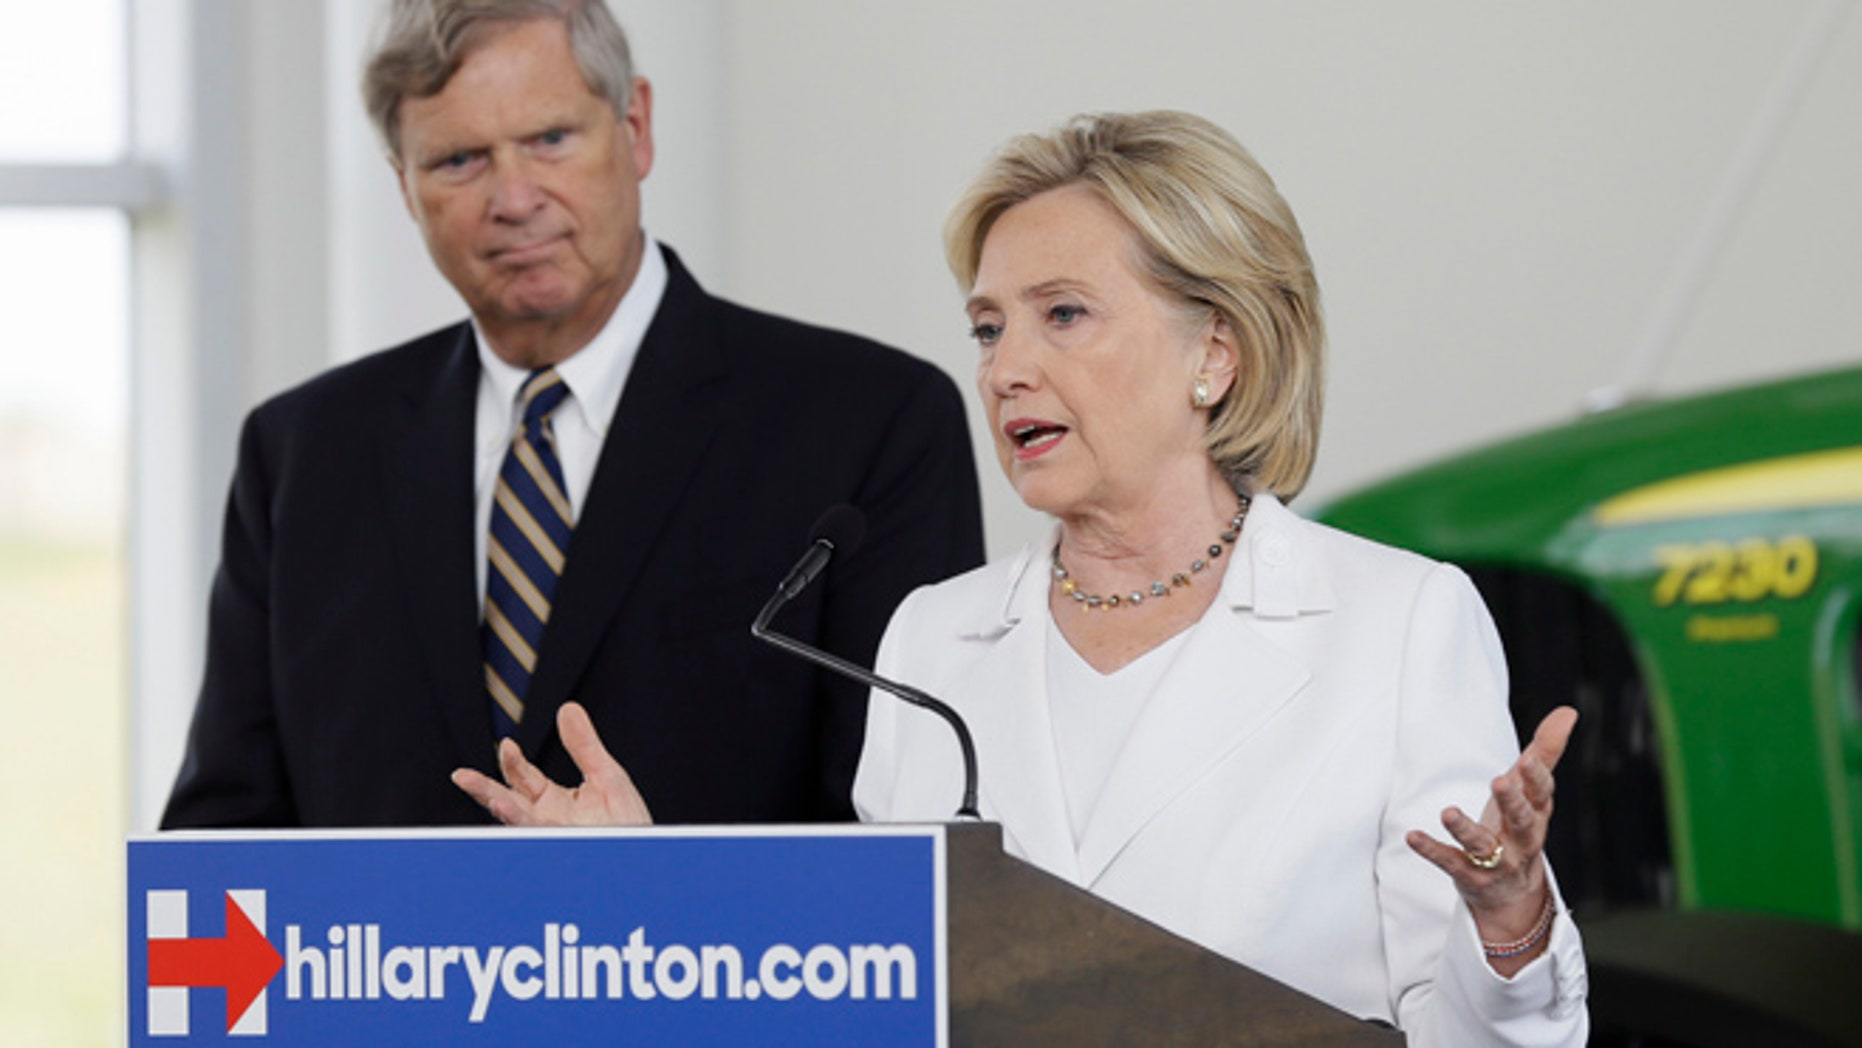 Aug 26, 2015: Democratic presidential candidate Hillary Rodham Clinton, accompanied by Agriculture Secretary Tom Vilsack, speaks during a news conference at the Des Moines Area Community College in Ankeny, Iowa. (AP)